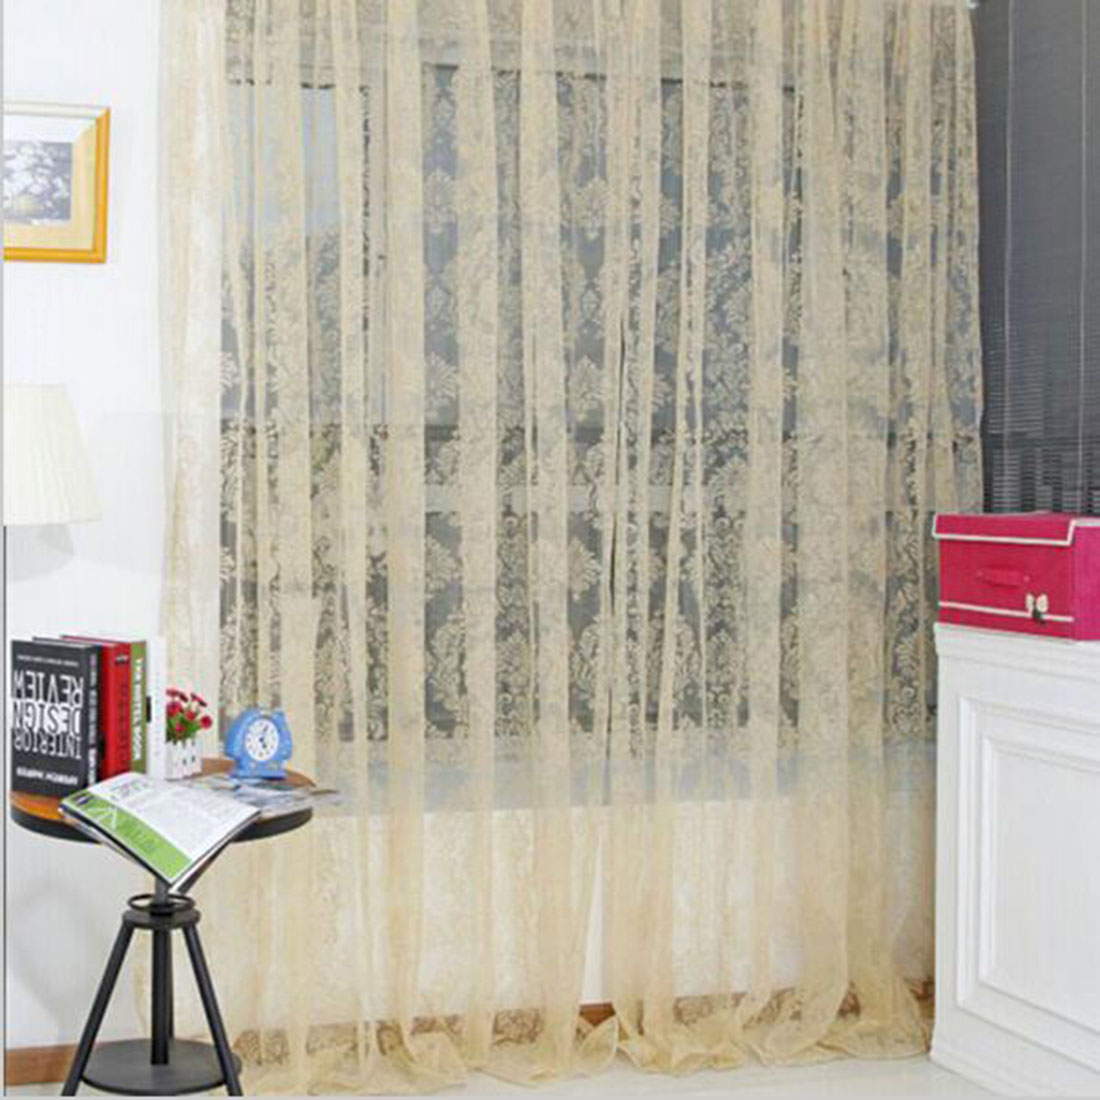 Us 3 18 30 Off New Fashion Finished Window Screening Tulle Modern Sheer Curtains For Living Room The Bedroom Fabric For Curtain In Stock In Curtains